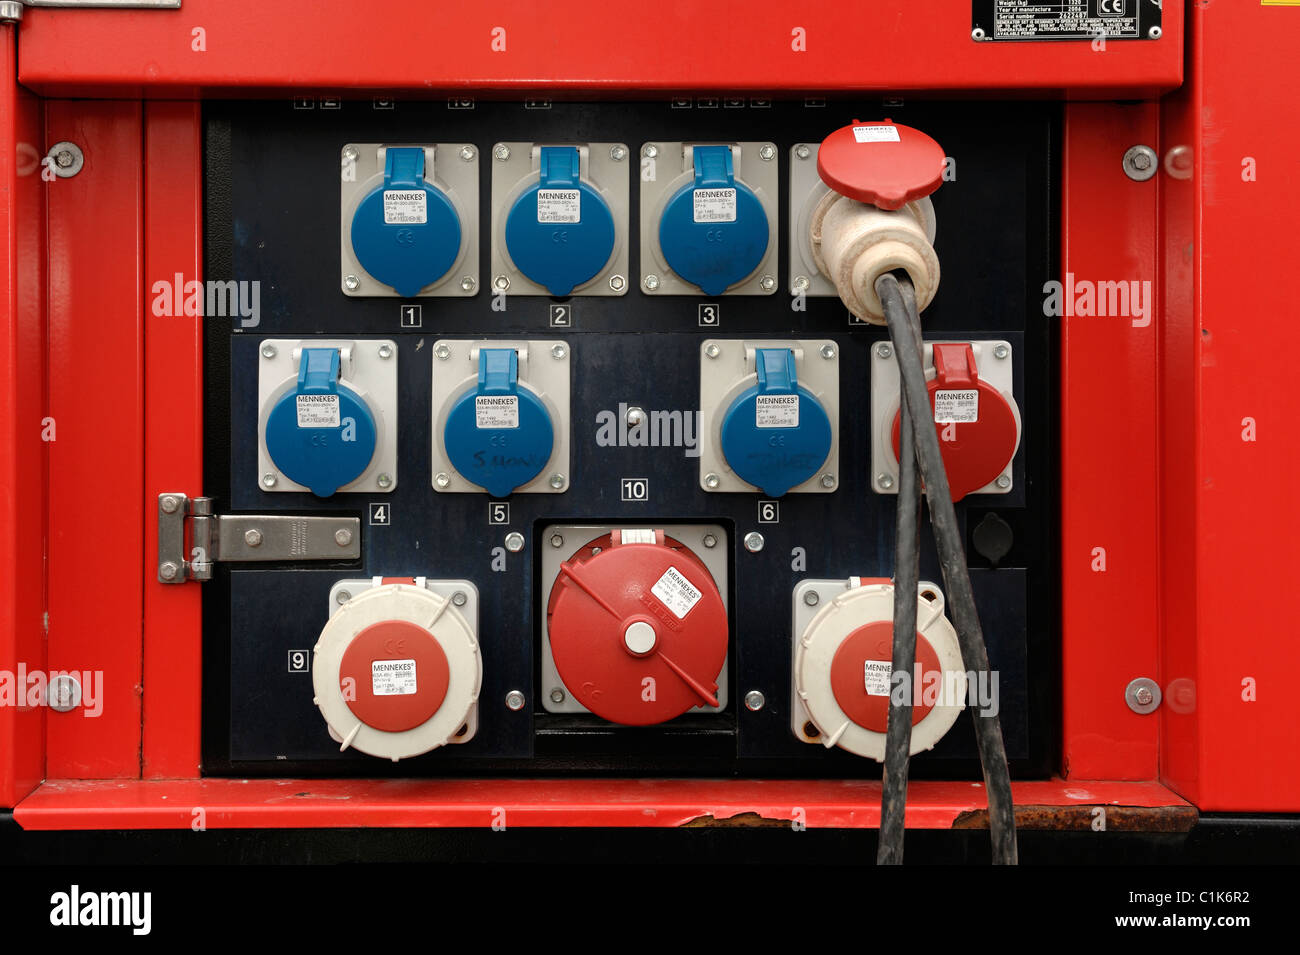 Generator Power Sockets - Stock Image